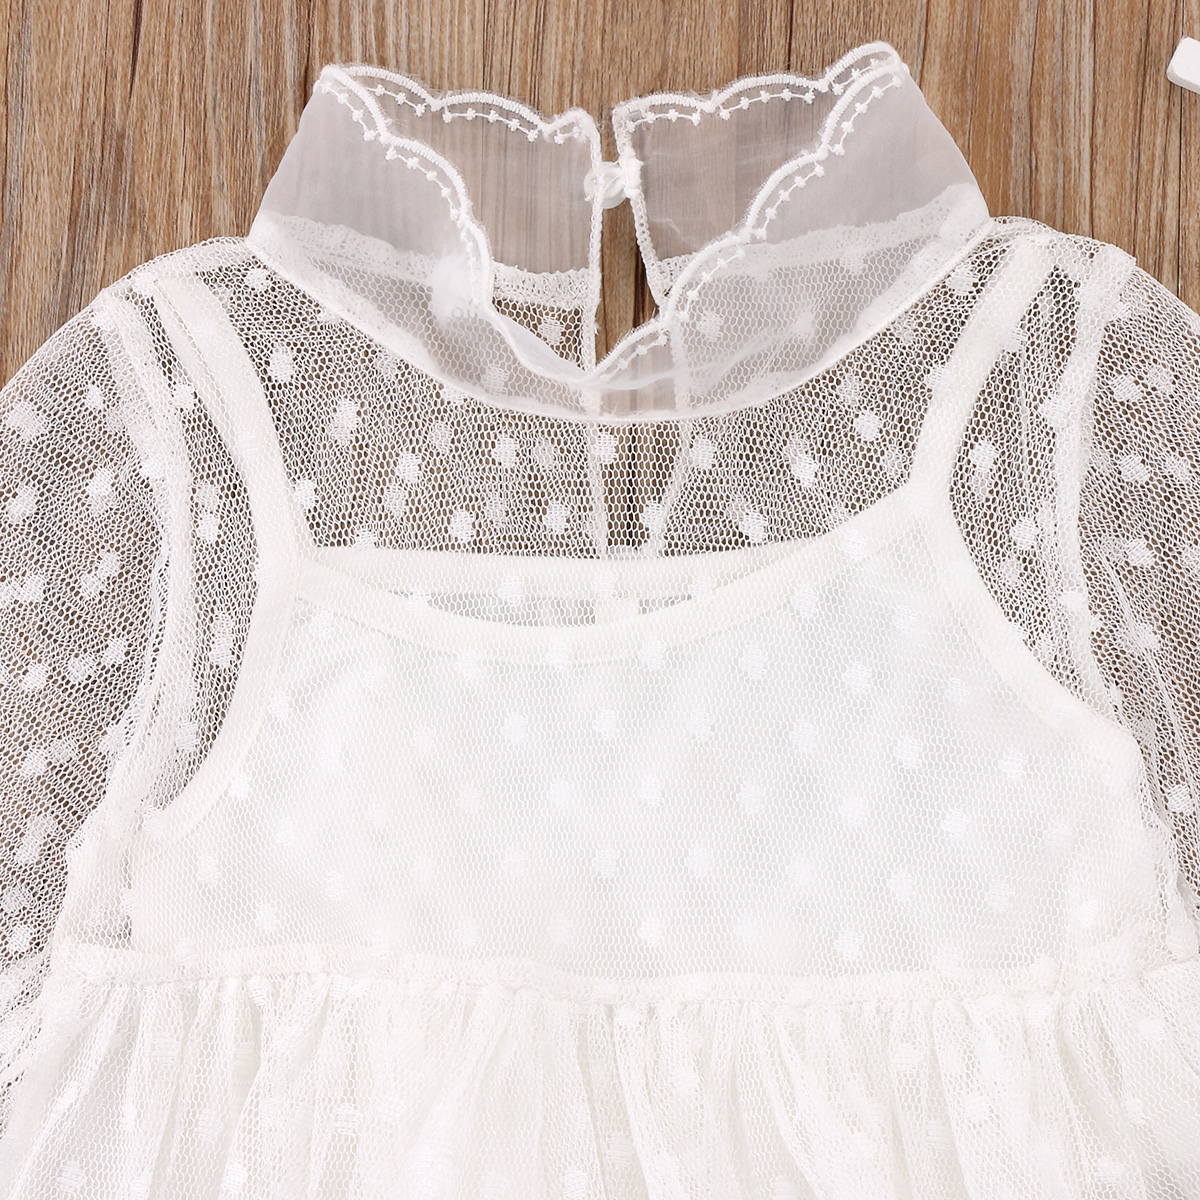 Aliexpress.com   Buy Fashion Kids Baby Girls Party Princess Wedding Lace  Tulle Dress Cute Children Dot Tiered Ball Gown Dresses Clothes Sundress 1 5Y  from ... 8ec6d07ace0a